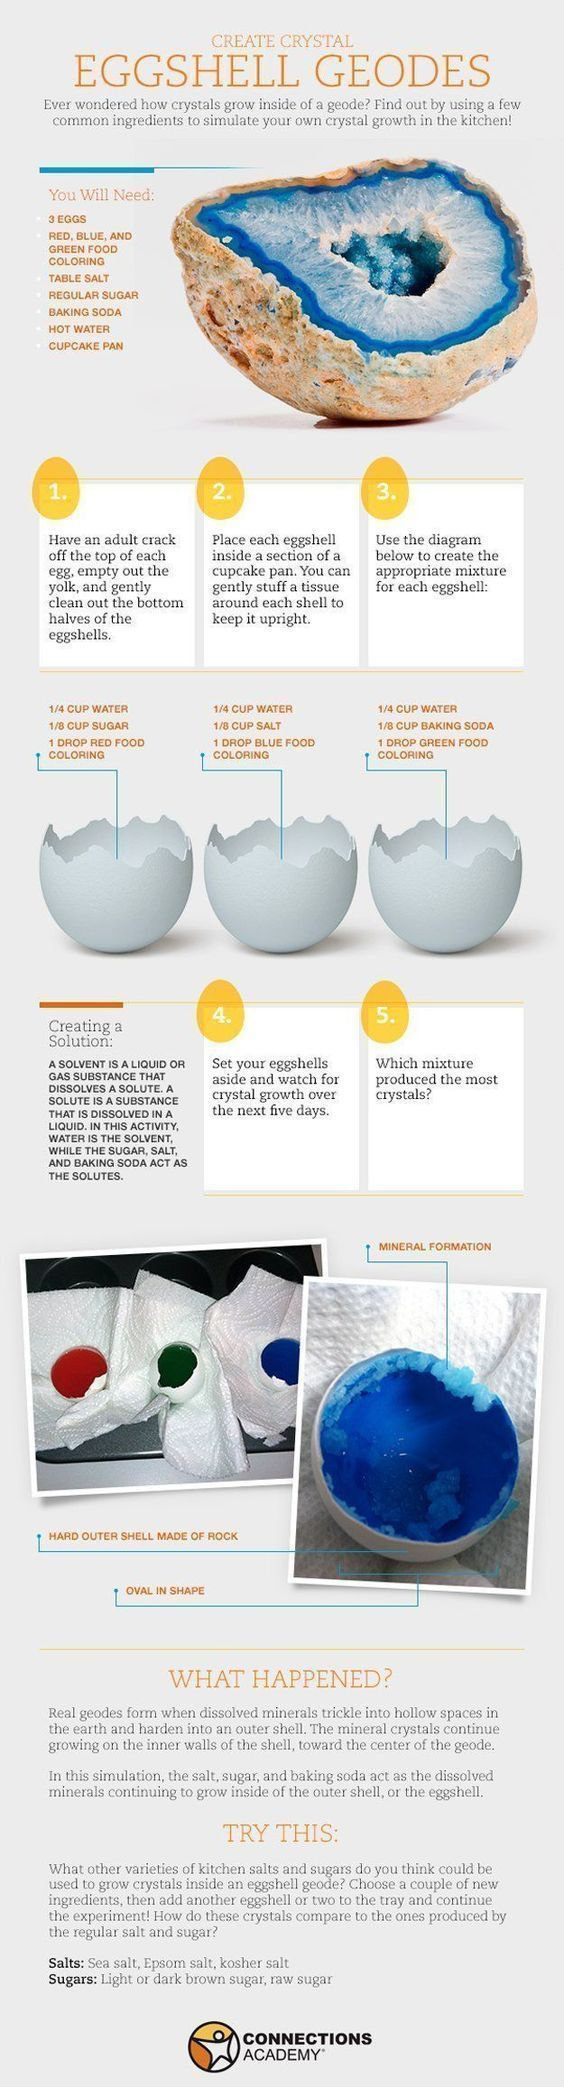 awesome science project for home schooling. Have to scroll down ...